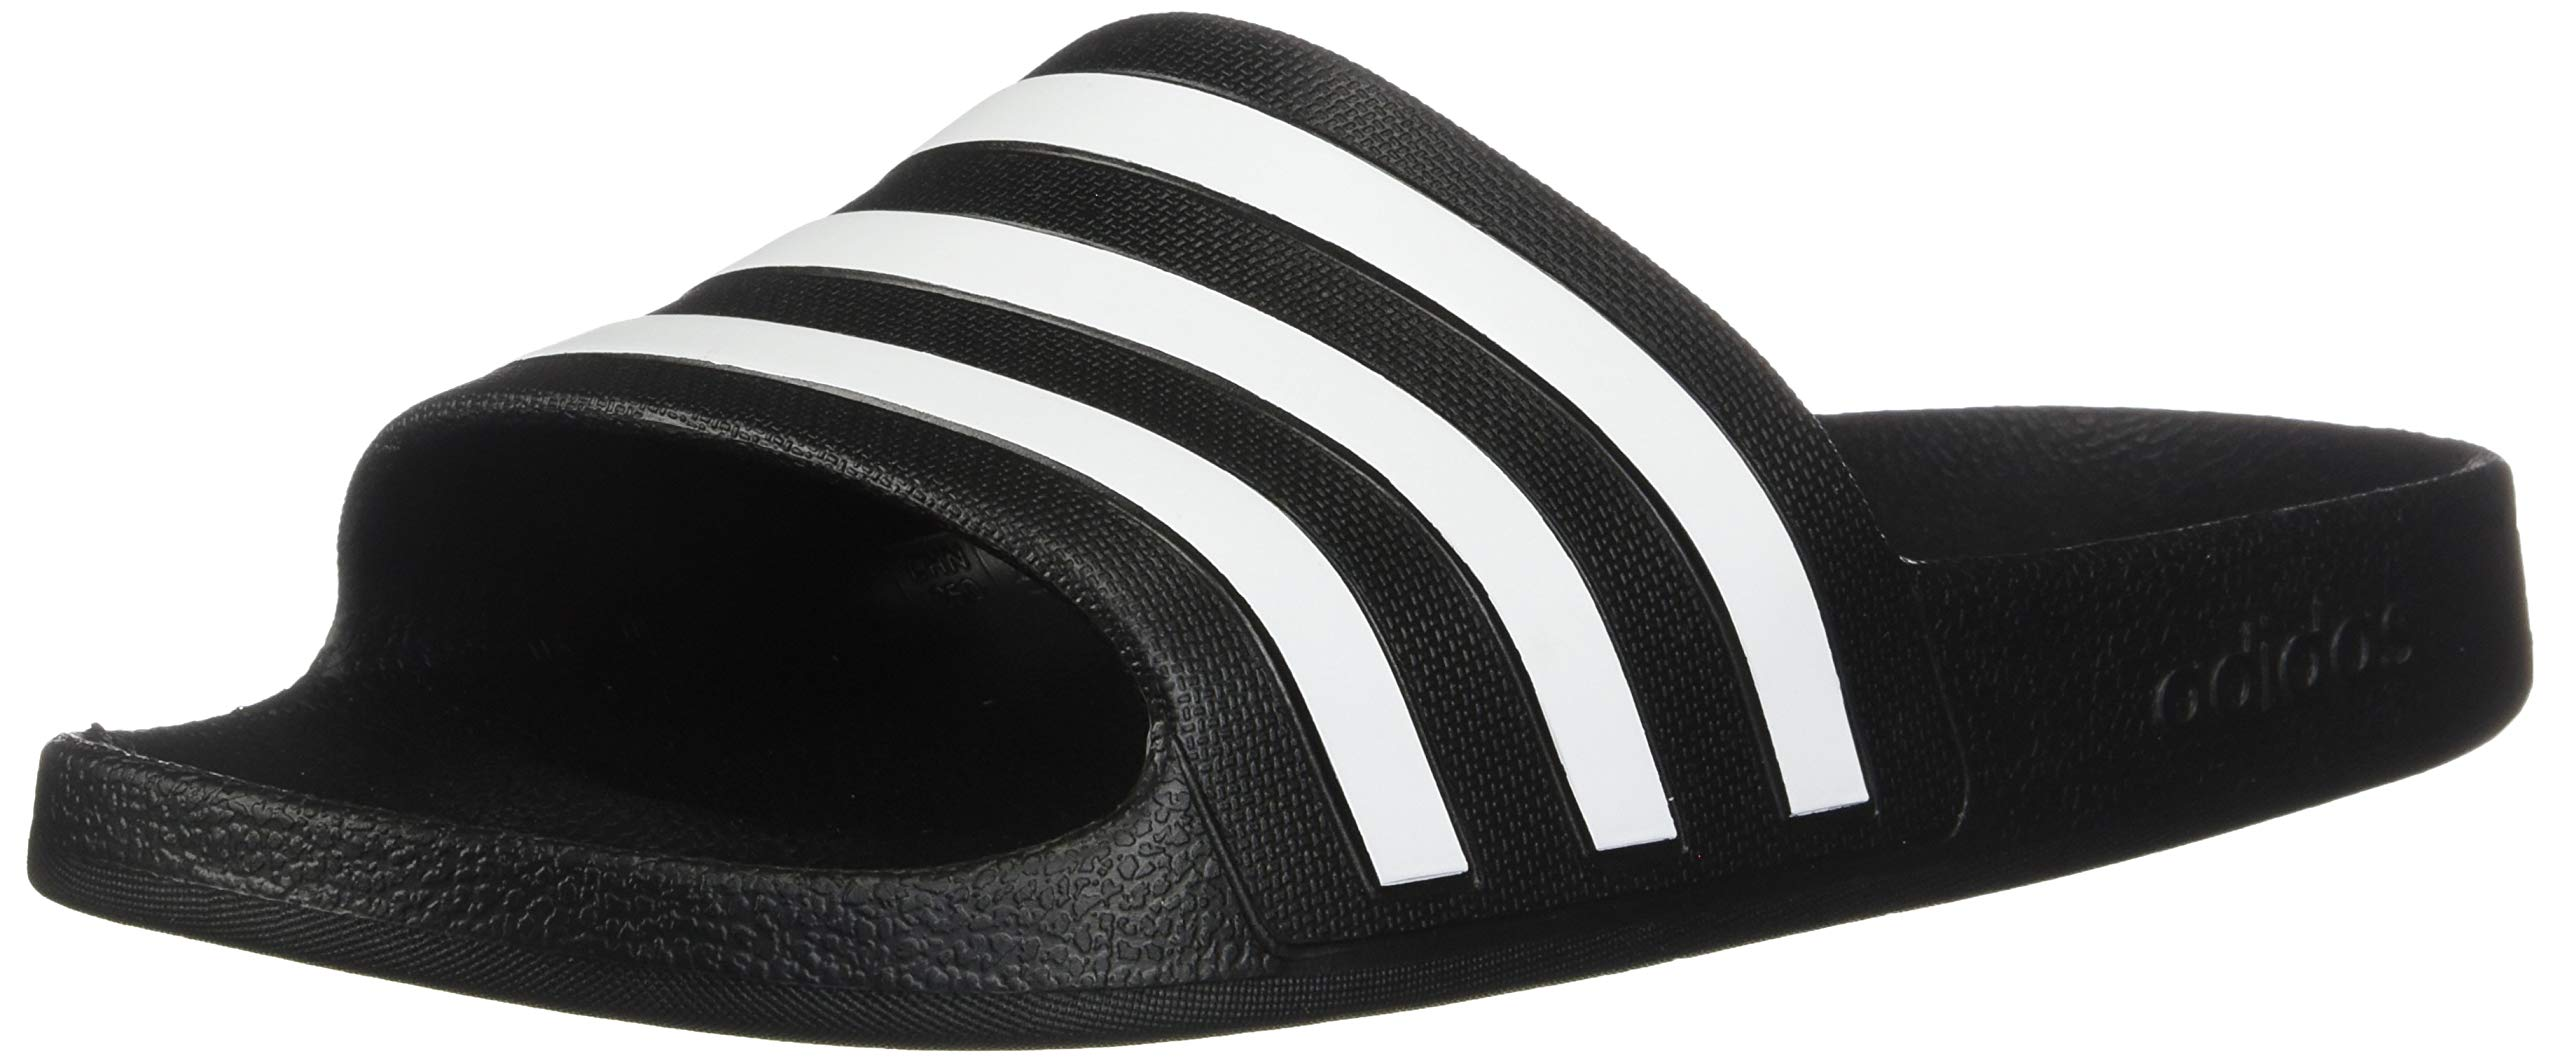 adidas Women's Adilette Aqua, White/Black, 7 M US by adidas